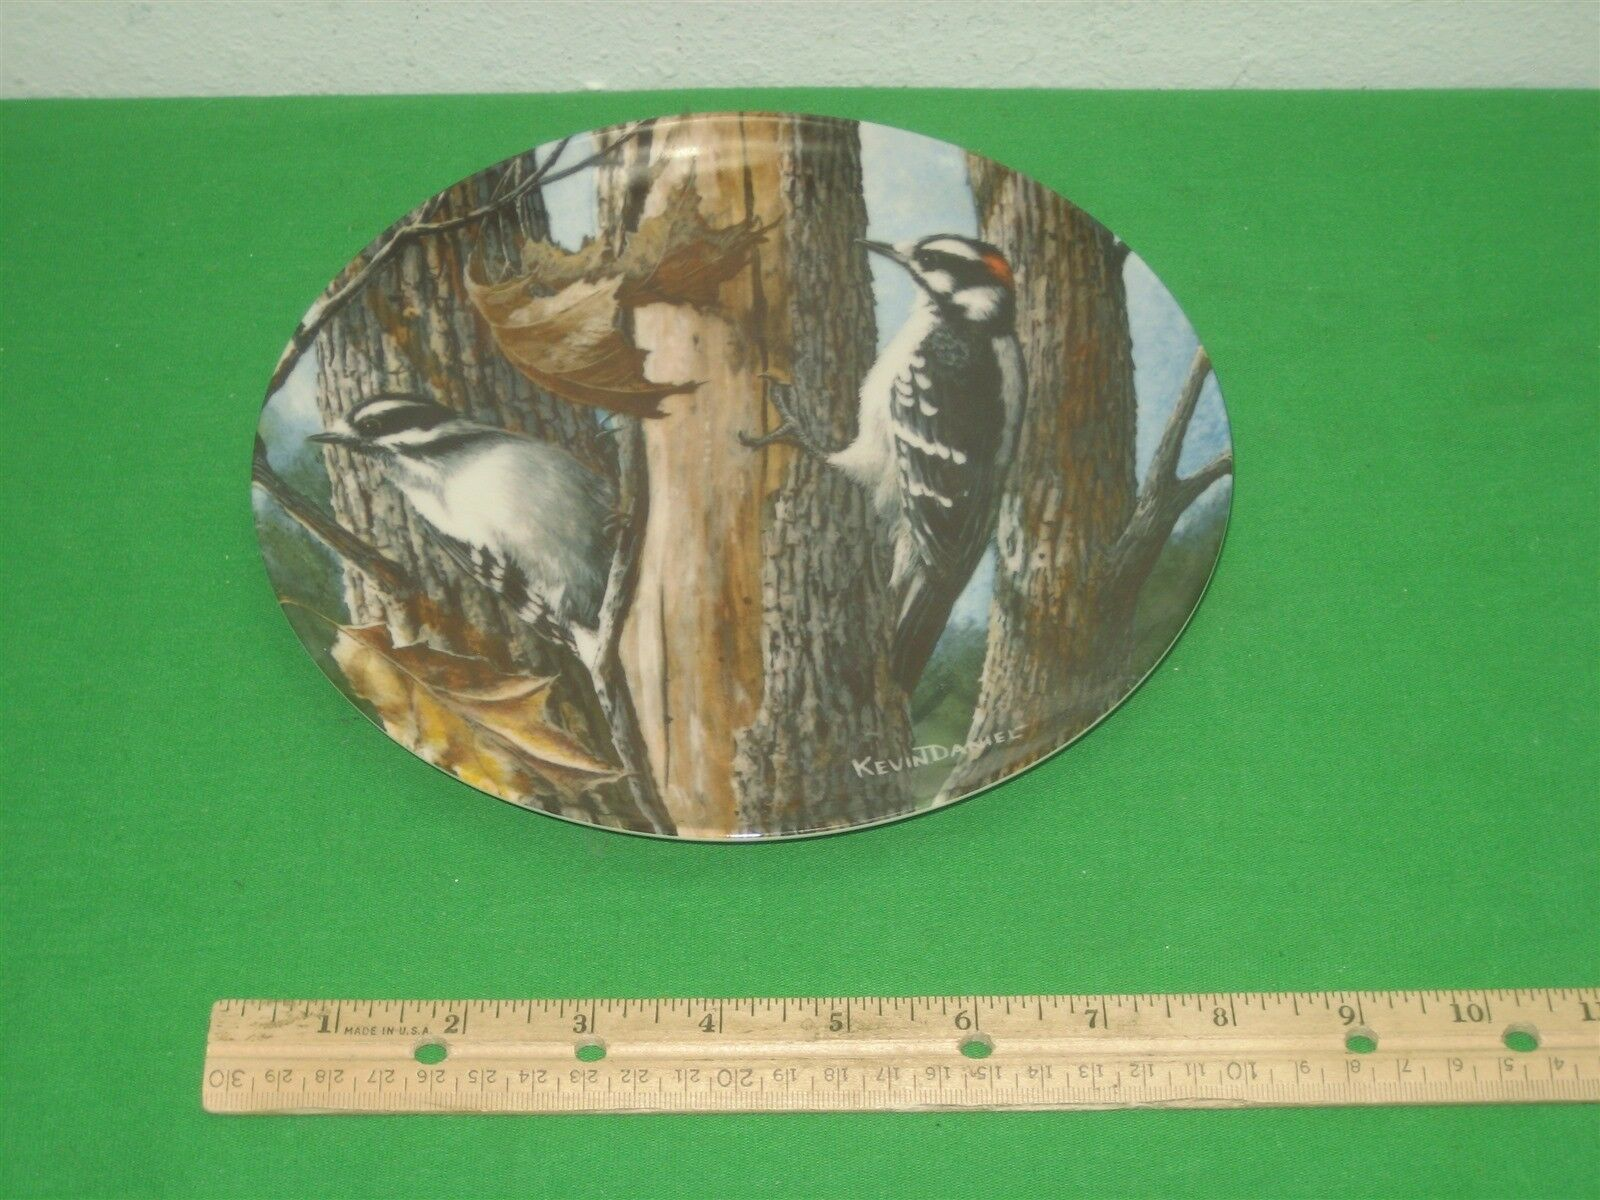 The Downy Woodpecker Collector Plate 1987 Knowles Kevin Daniel Plate No 161180